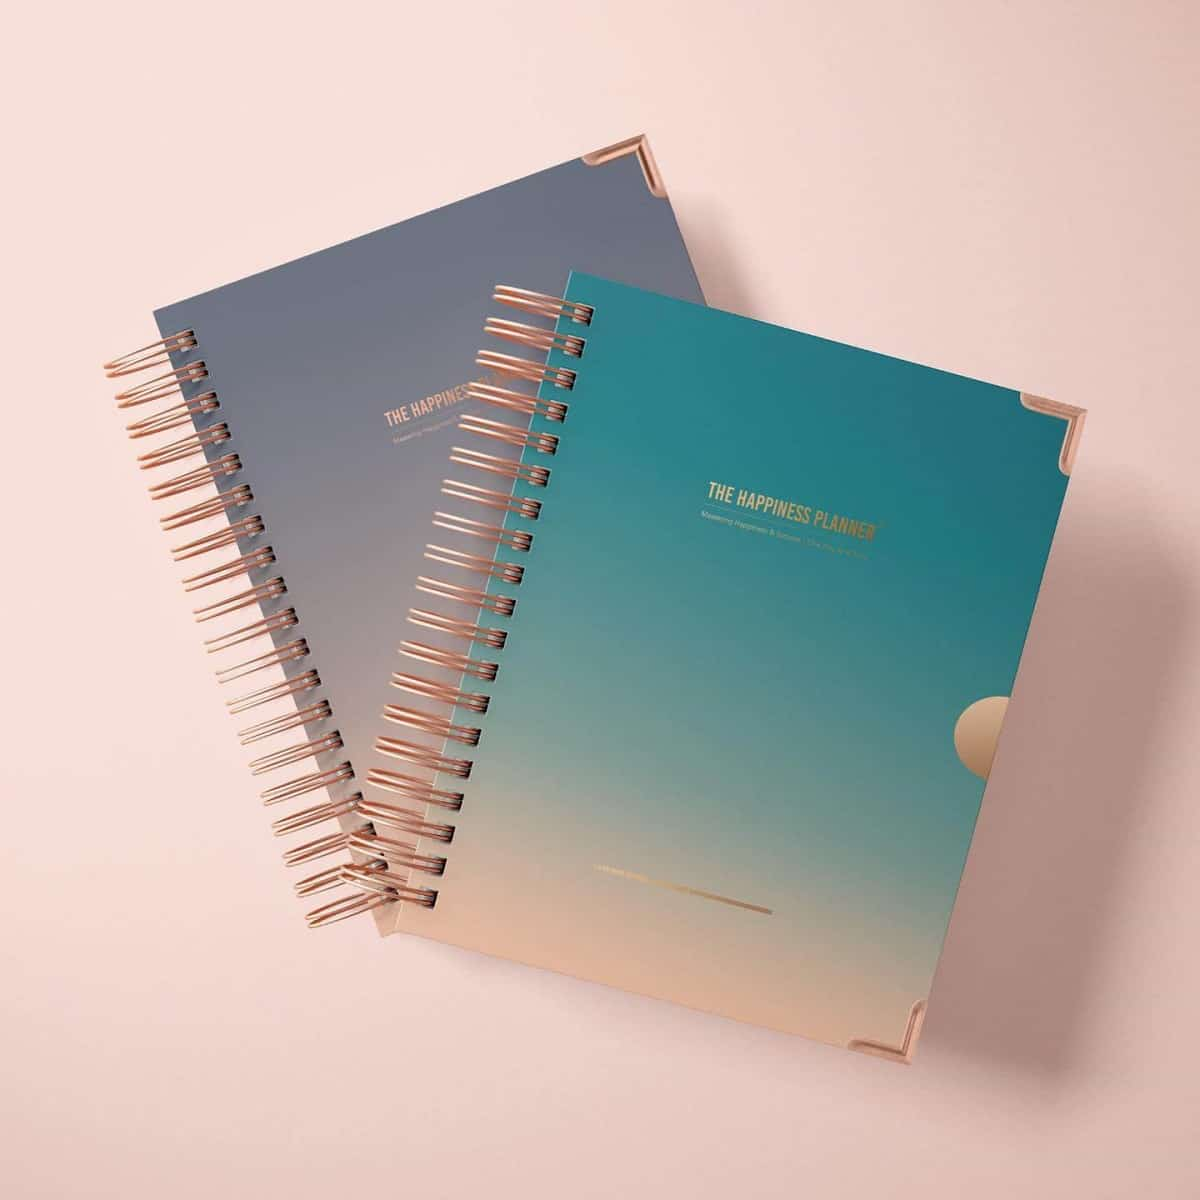 Happiness planner best planners for women 2021